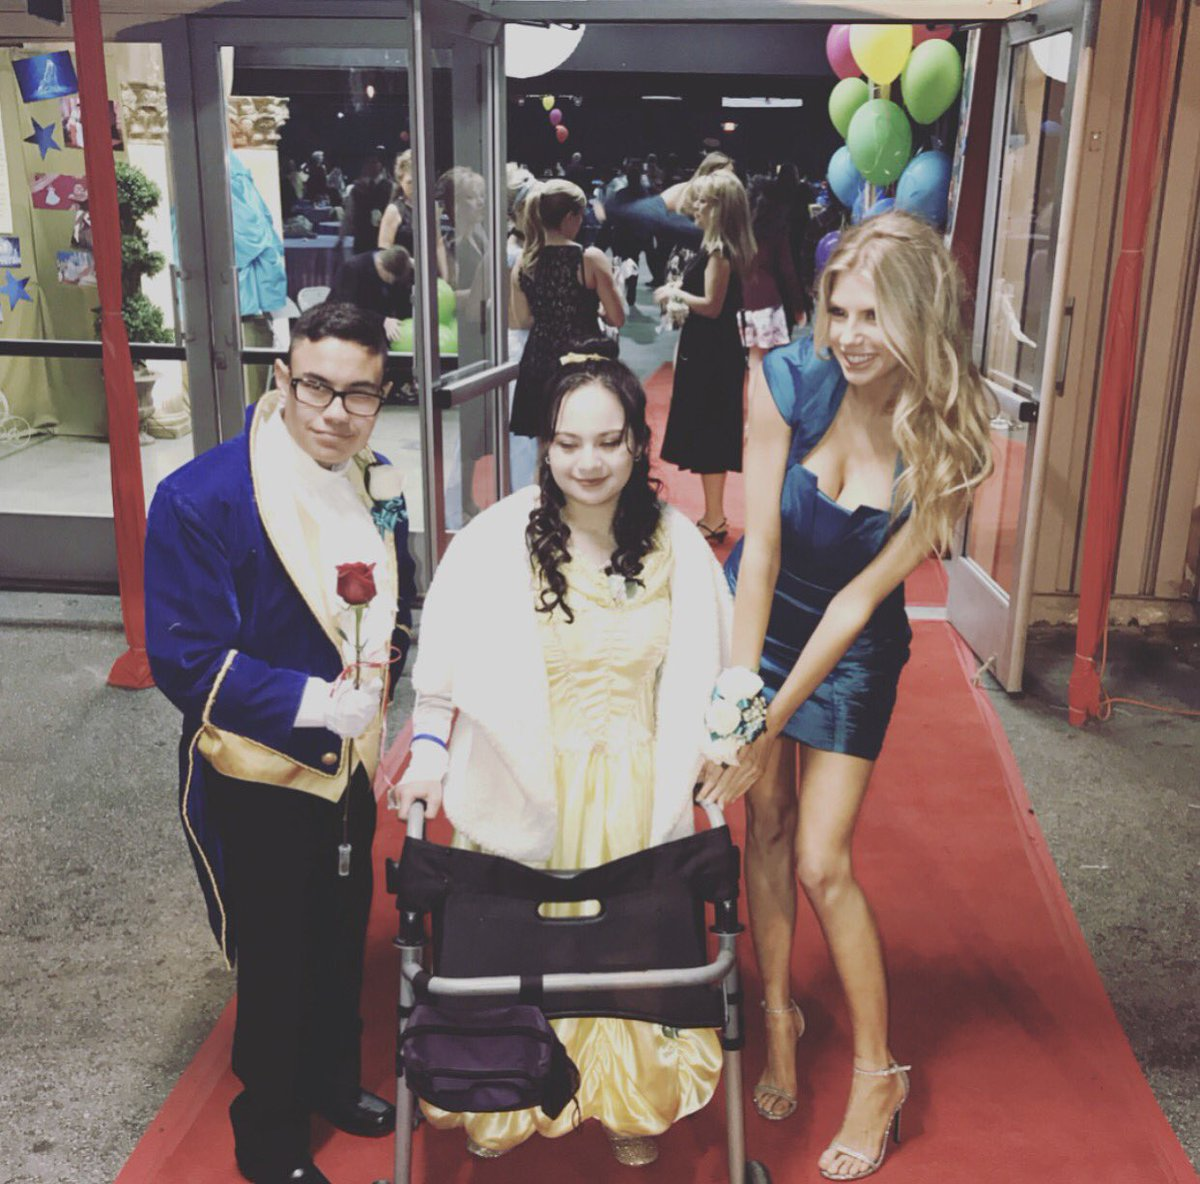 Best prom dates ever !  @bestbuddies https://t.co/Lh3OLruQW3